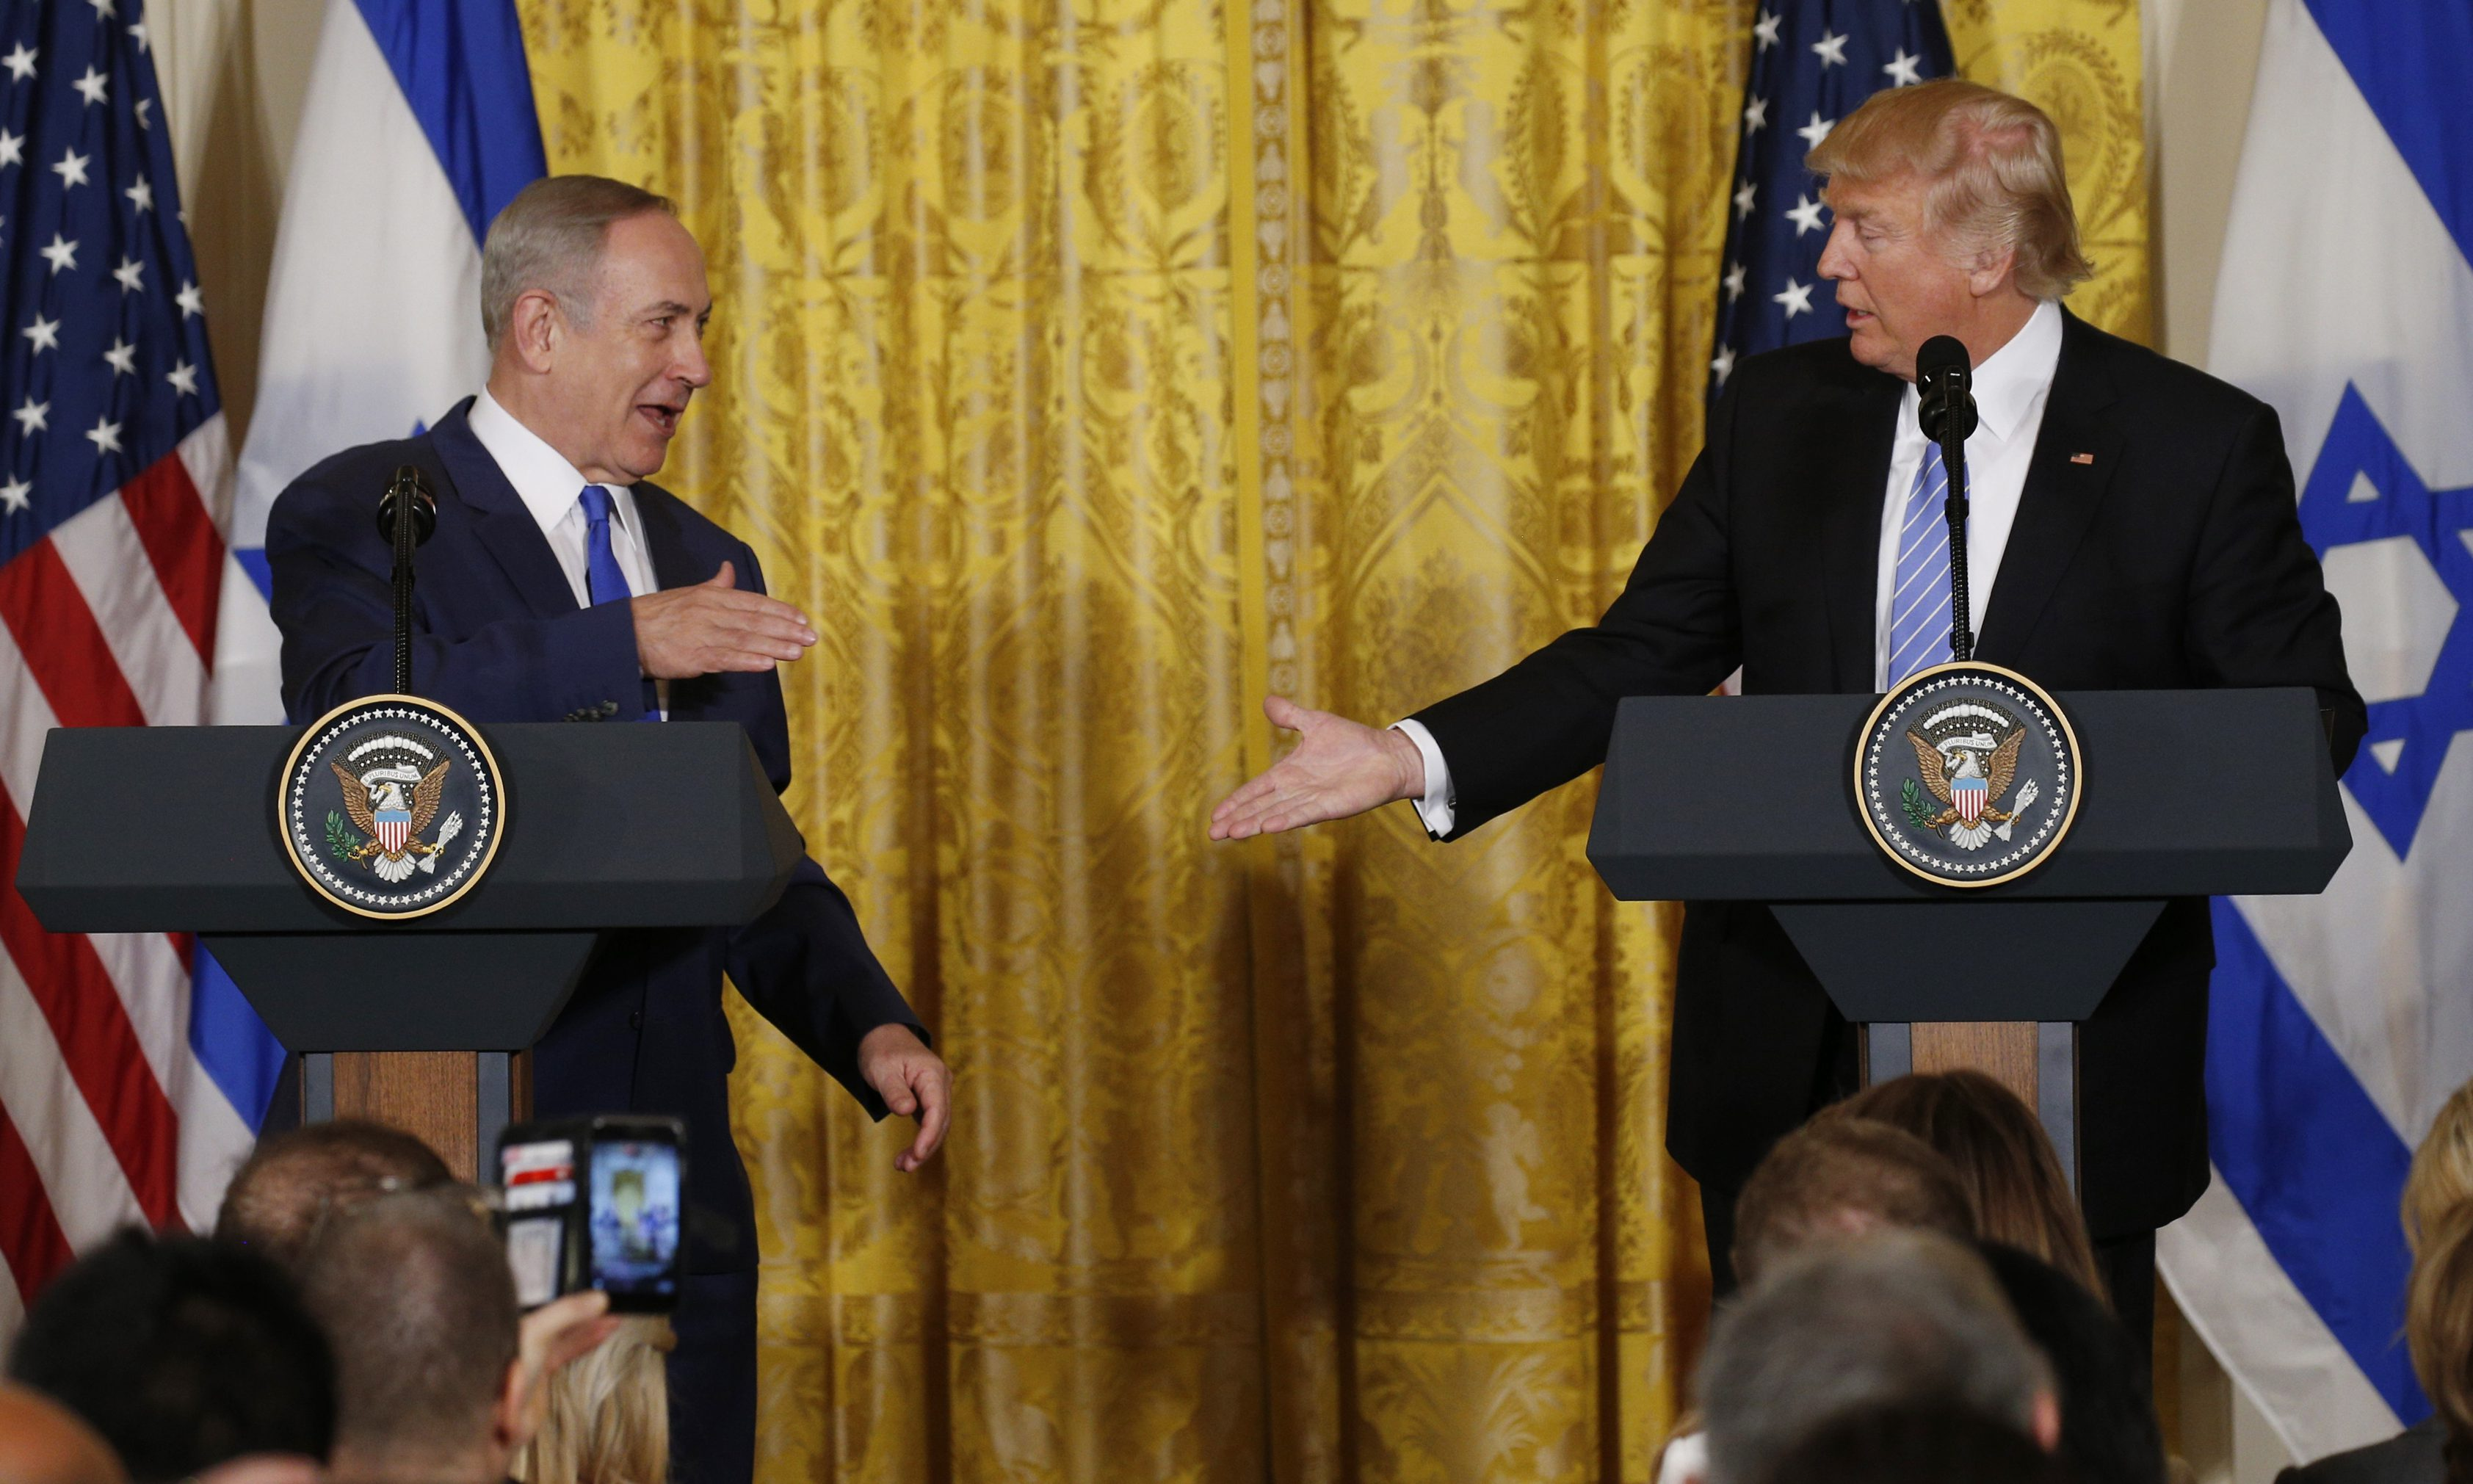 U.S. President Donald Trump (R) greets Israeli Prime Minister Benjamin Netanyahu after a joint news conference at the White House in Washington, U.S., February 15, 2017.   REUTERS/Kevin Lamarque  - RTSYU8U